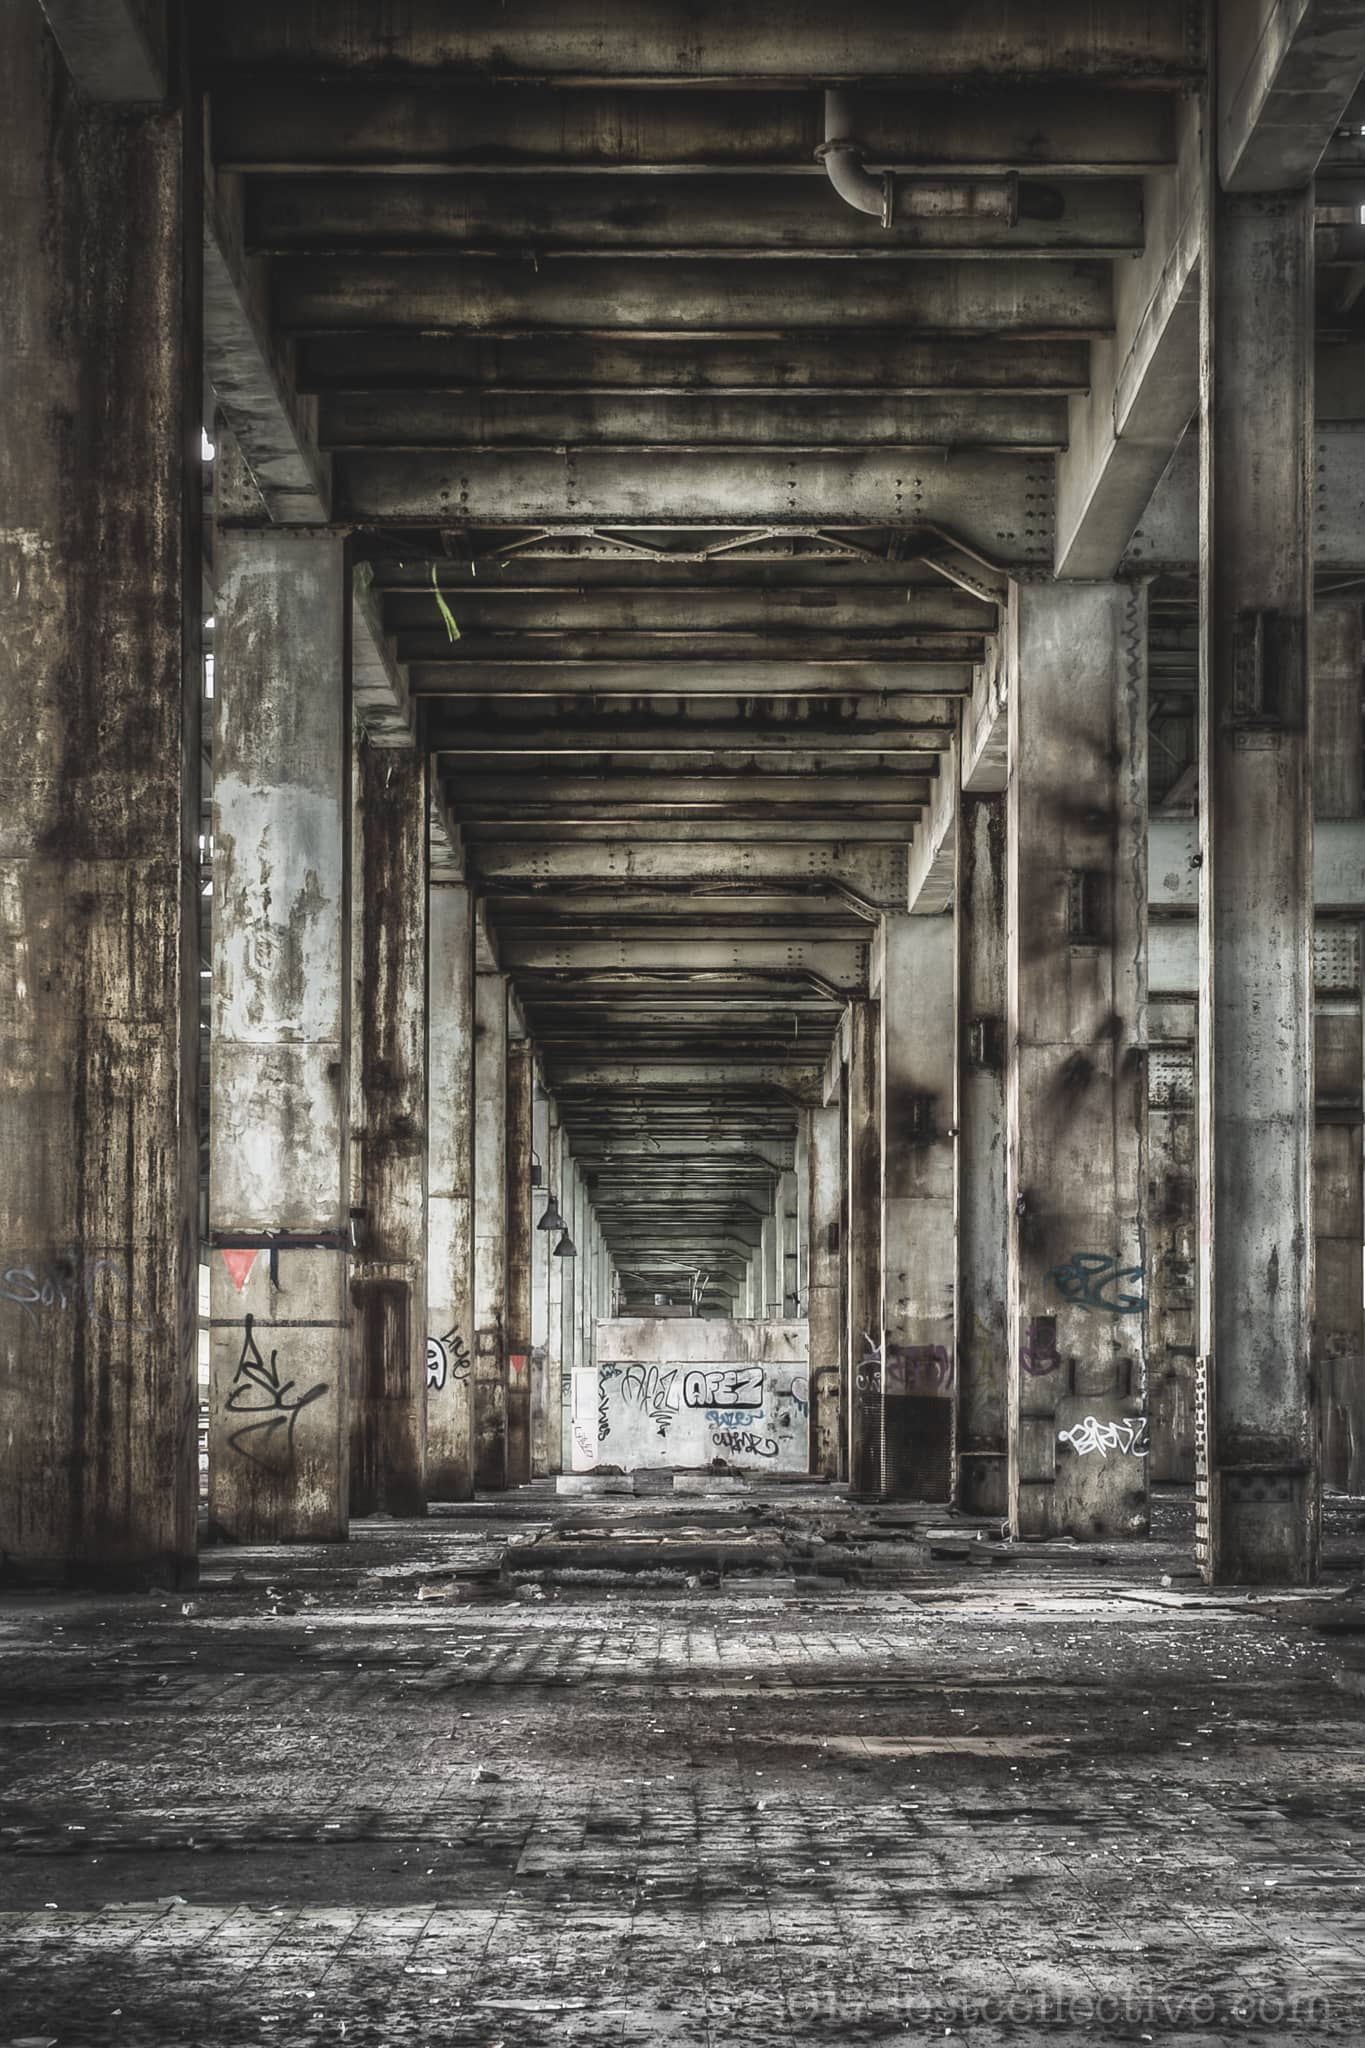 large pylons supporting an overhead walkway in the abandoned wangi power station - lost collective